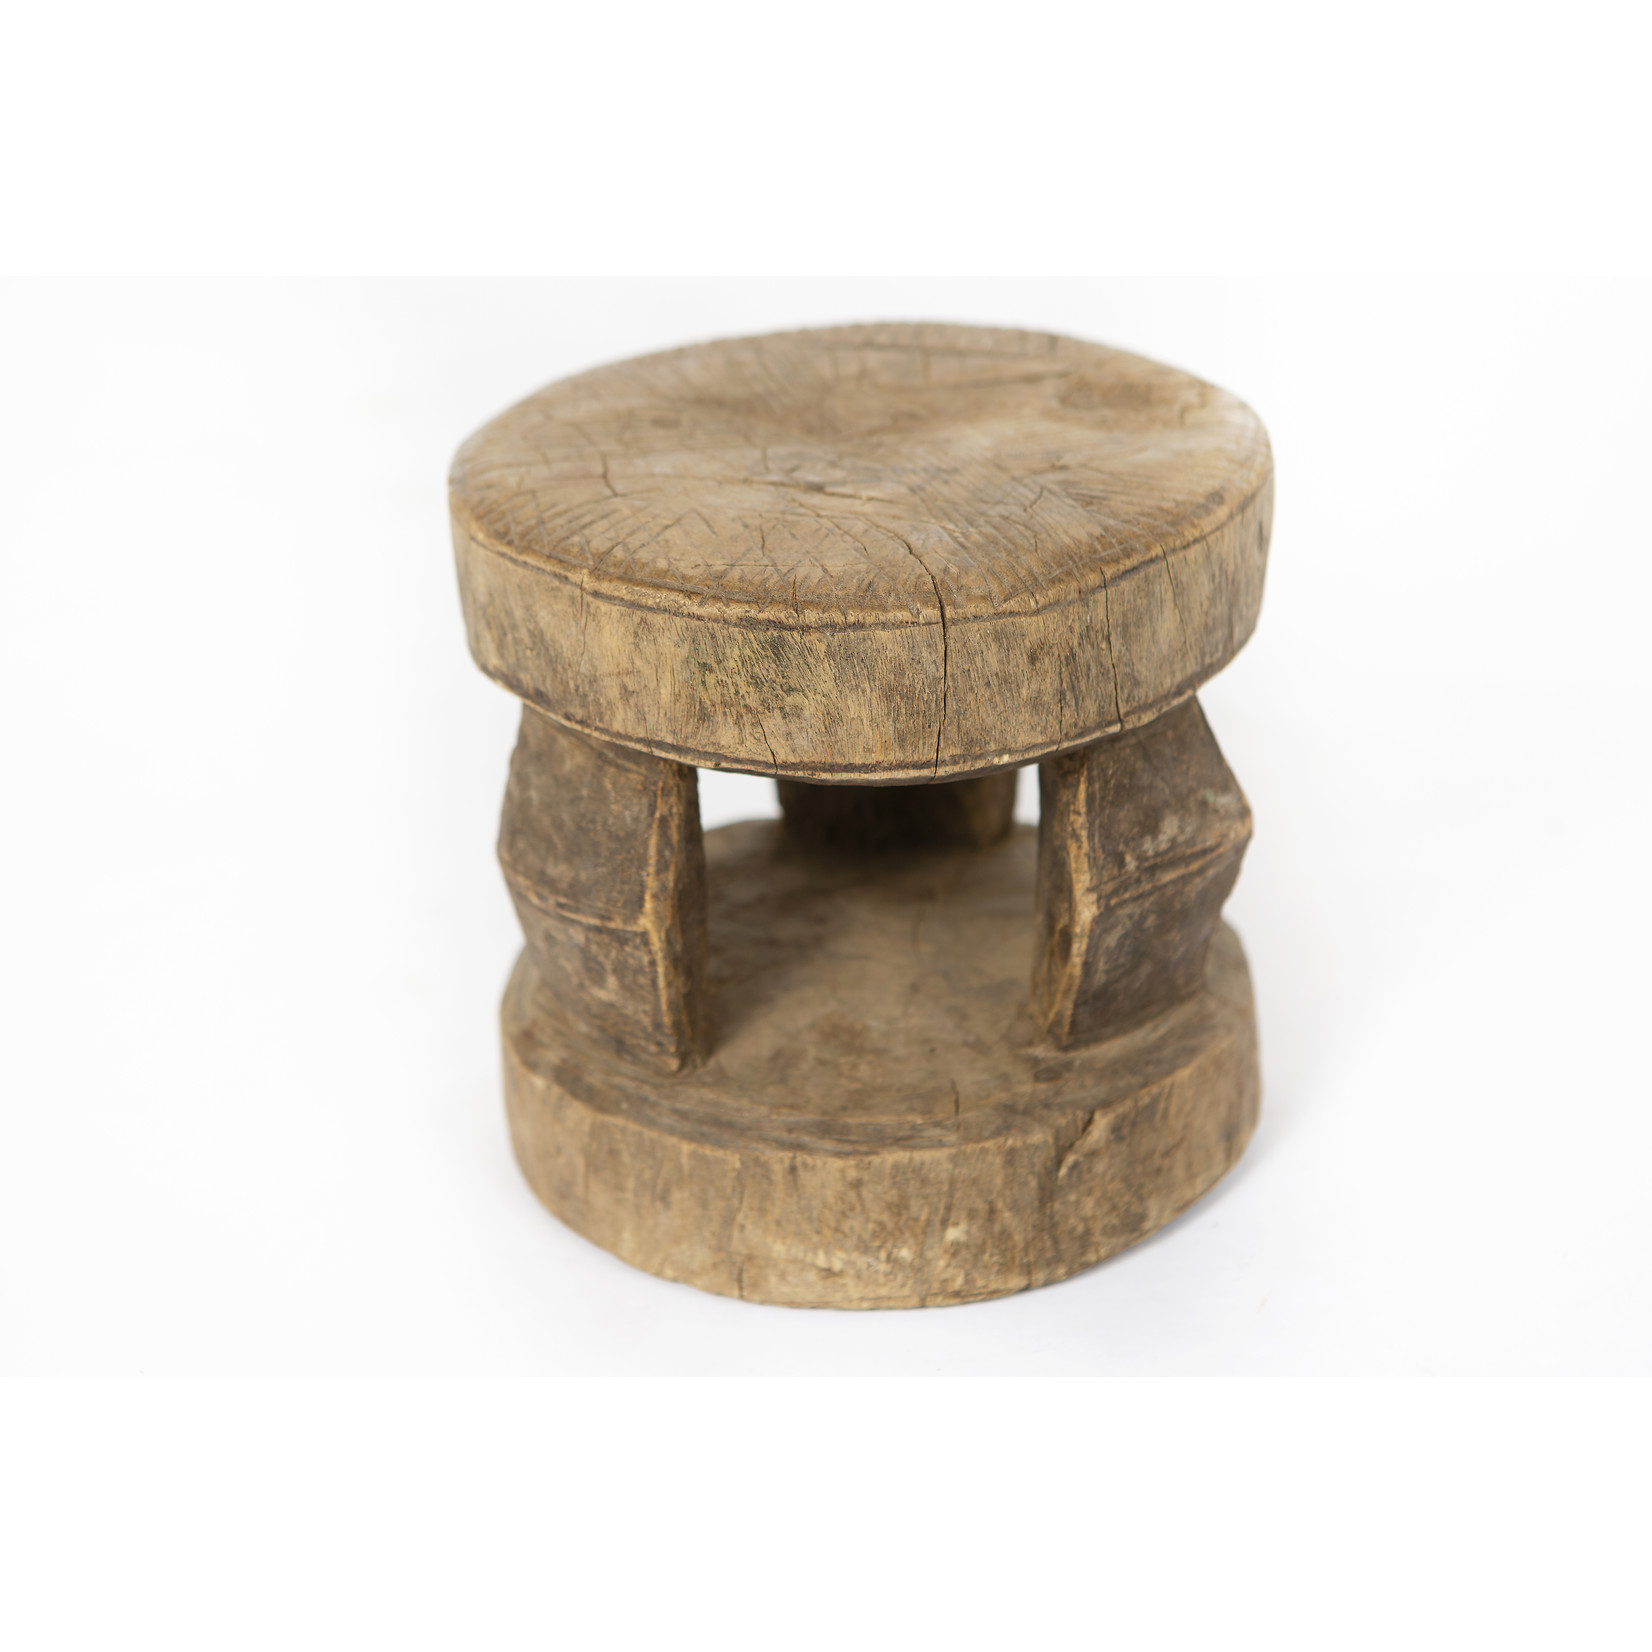 Authentic Dogon Peul stools from Mali - Rare antique African ceremonial stools